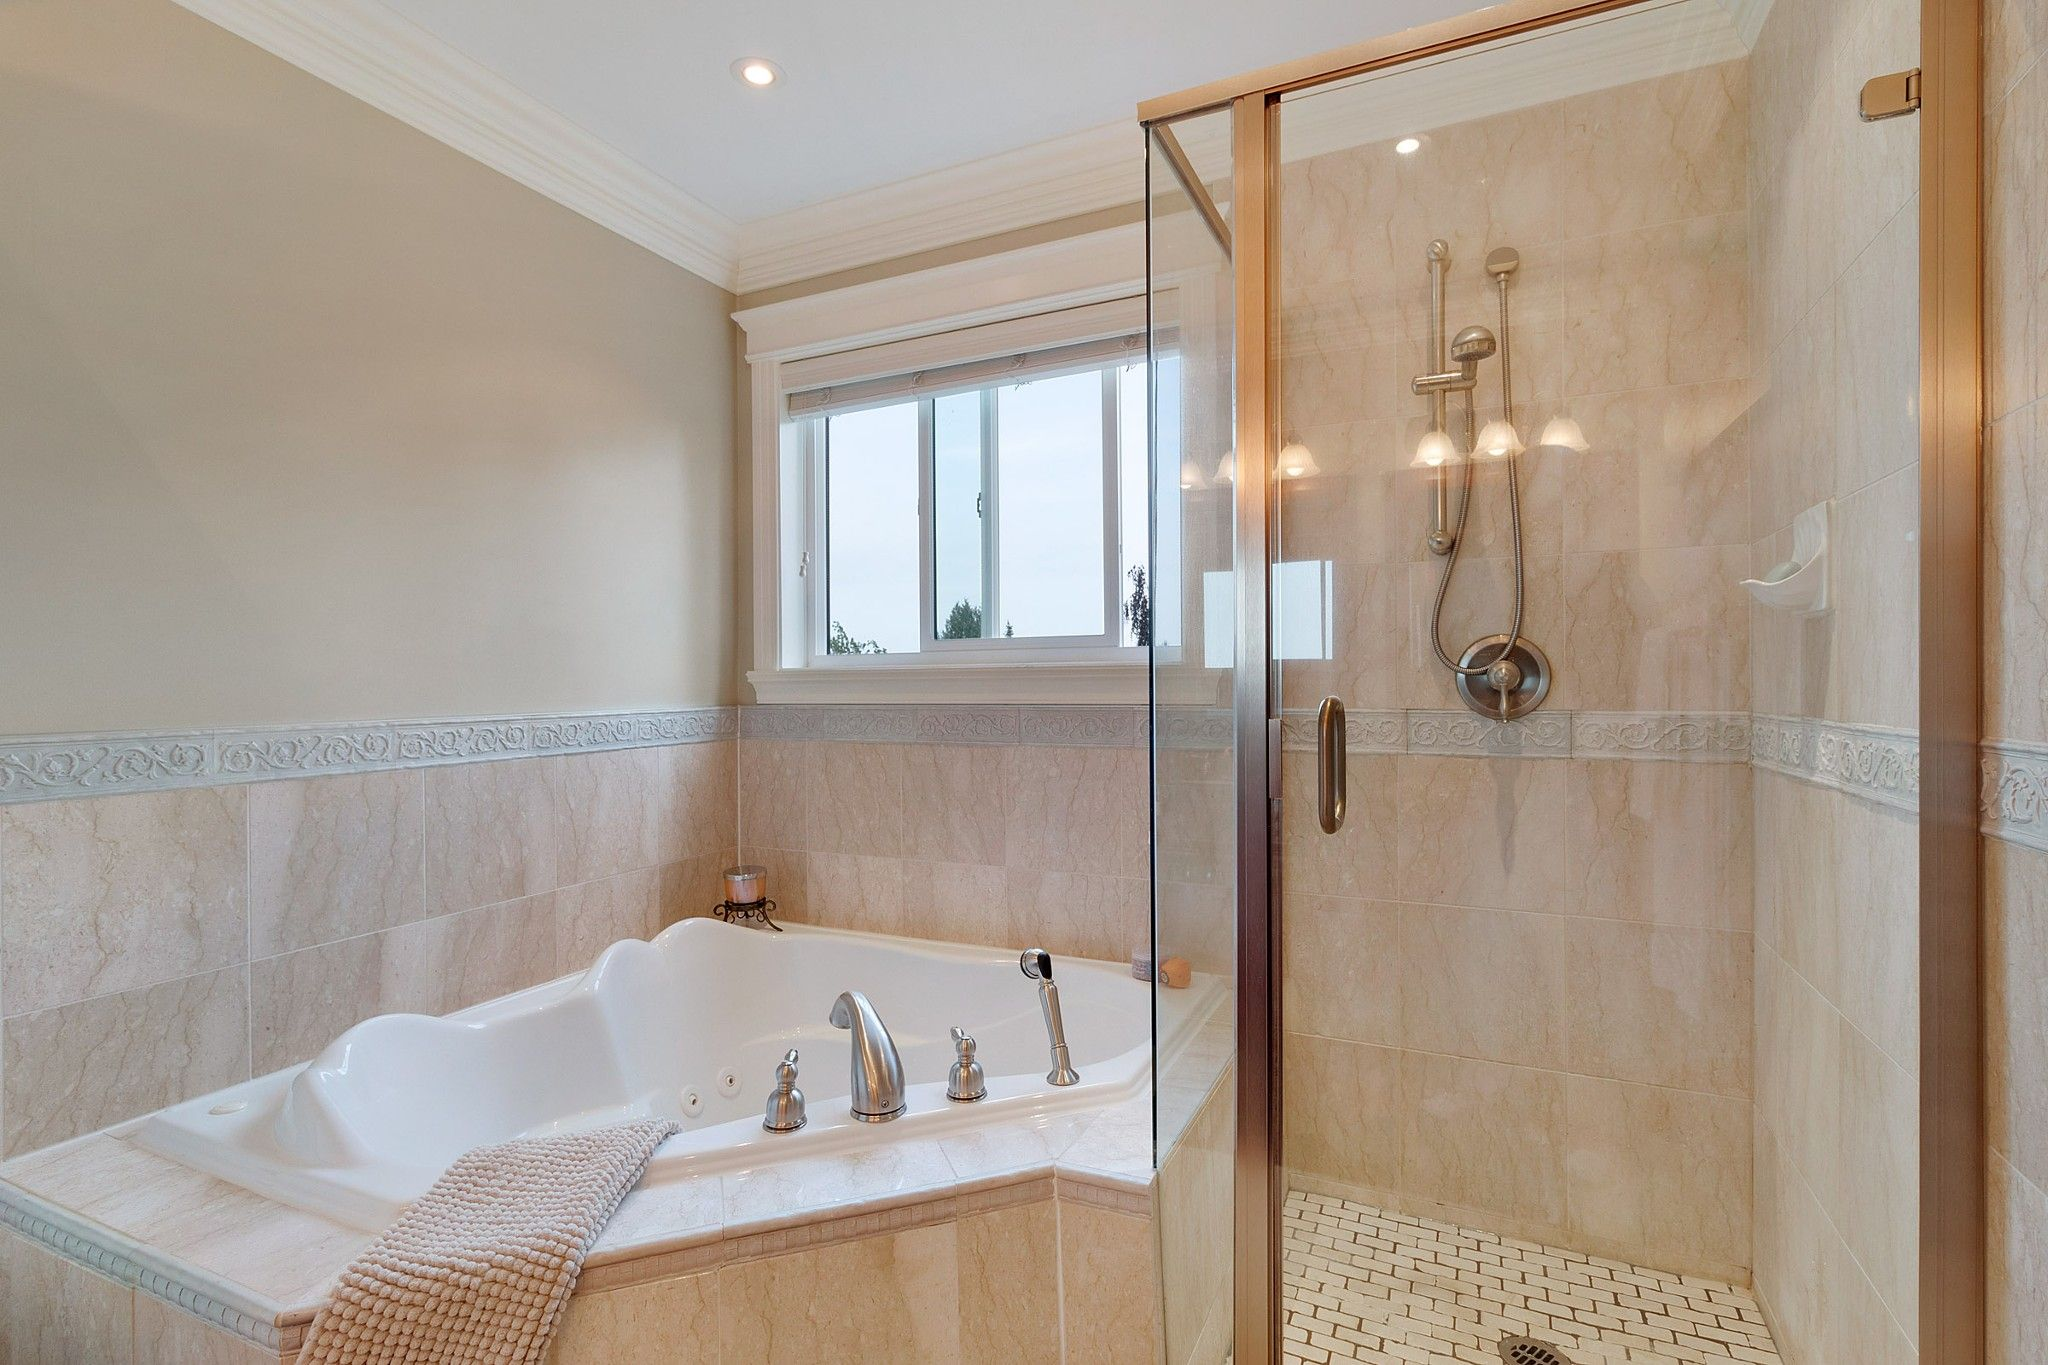 Photo 18: Photos: 1237 DYCK Road in North Vancouver: Lynn Valley House for sale : MLS®# R2374868